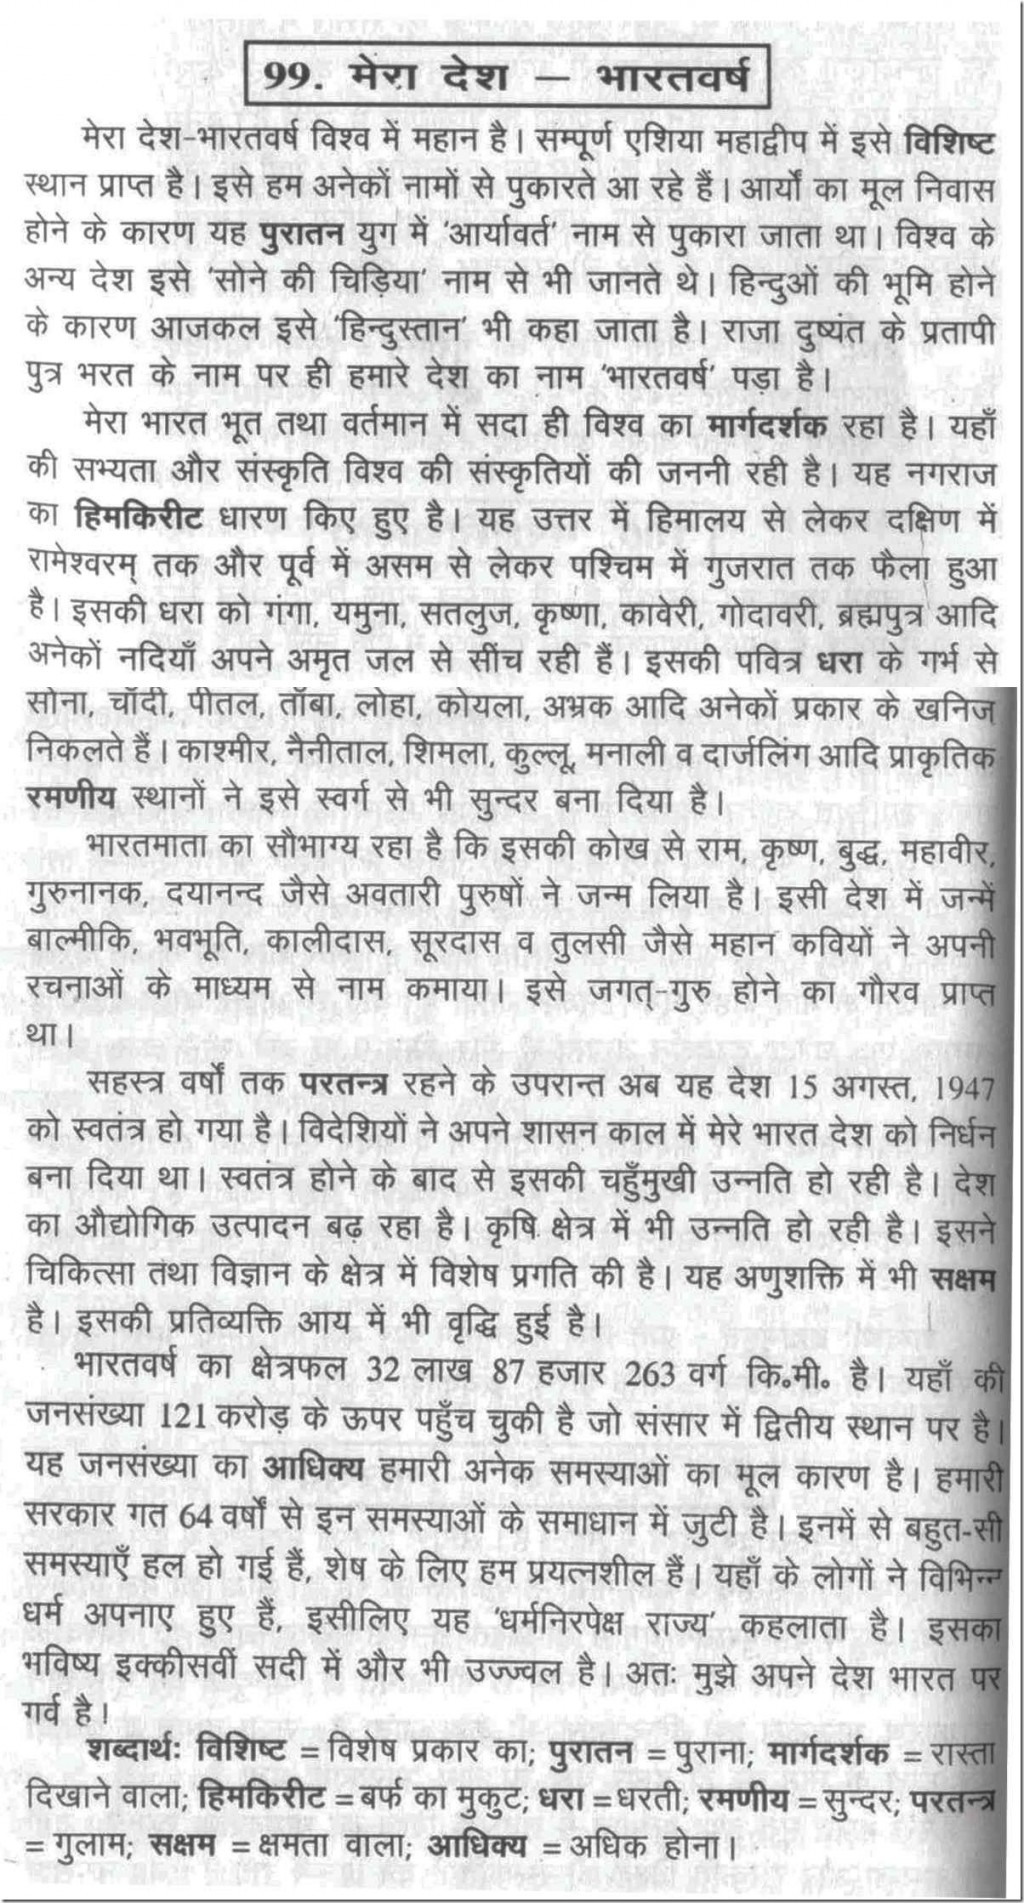 013 Essay Example 100099 Thumb Cleanliness In Sensational Hindi Is Godliness School Large